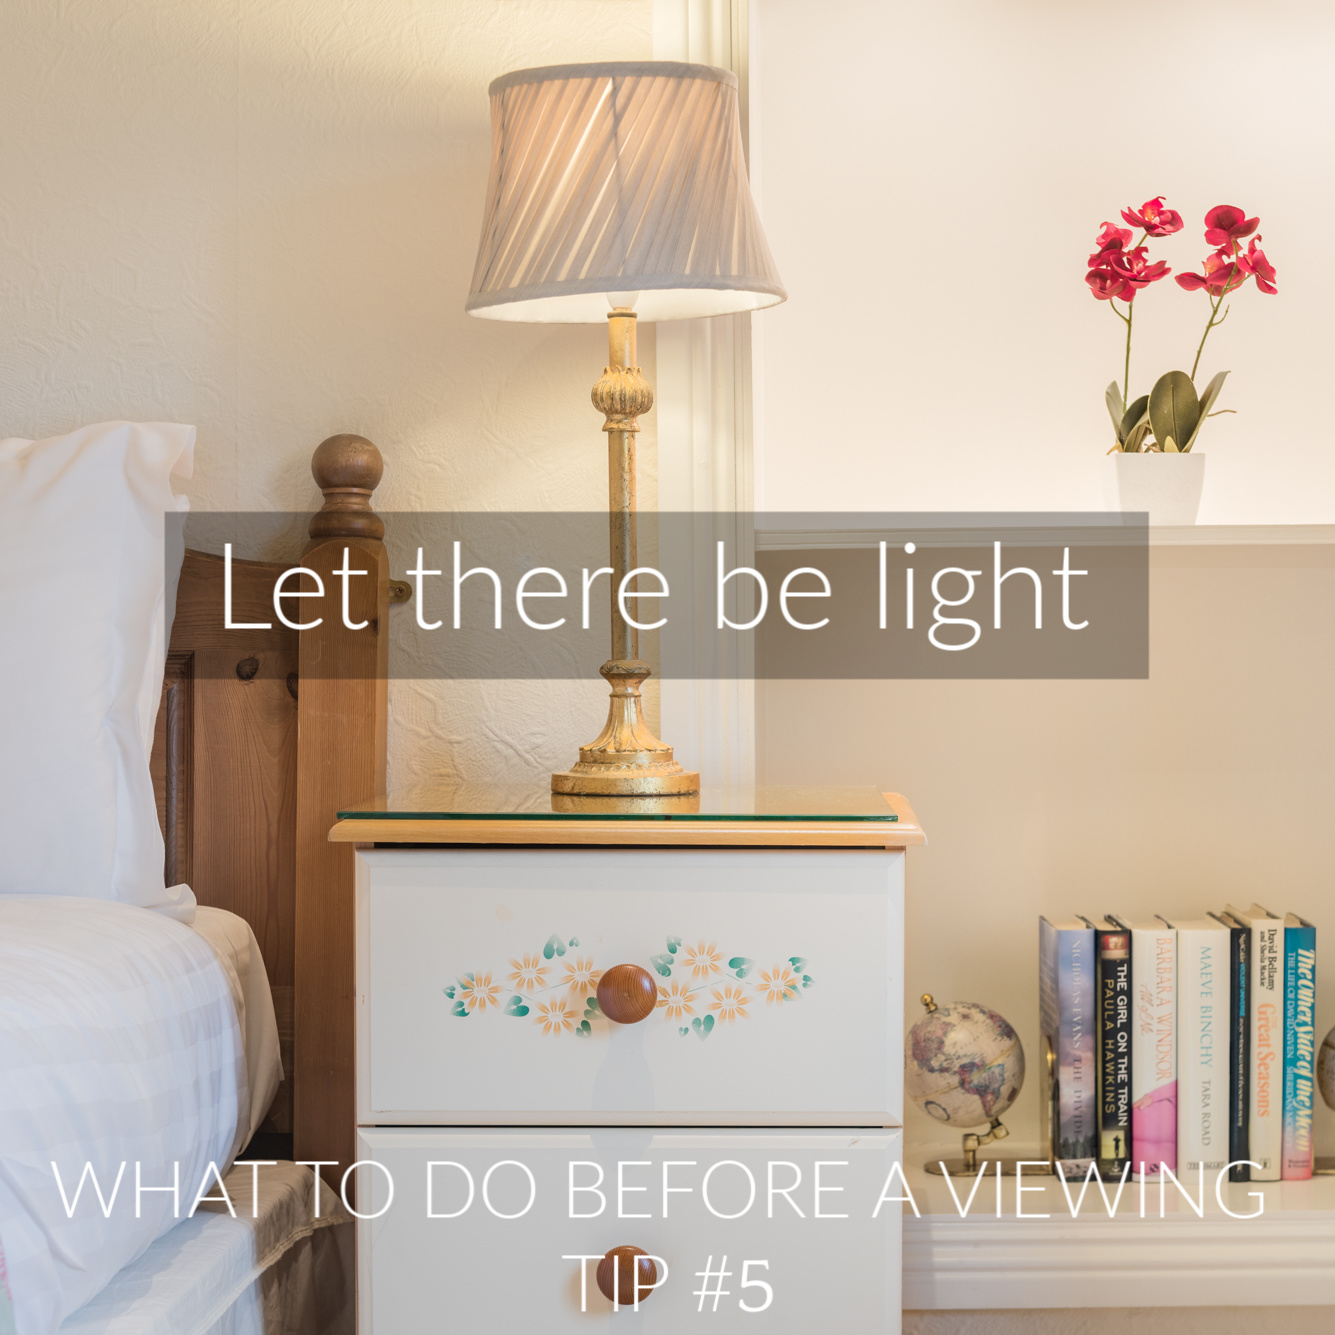 tg5-let-there-be-light